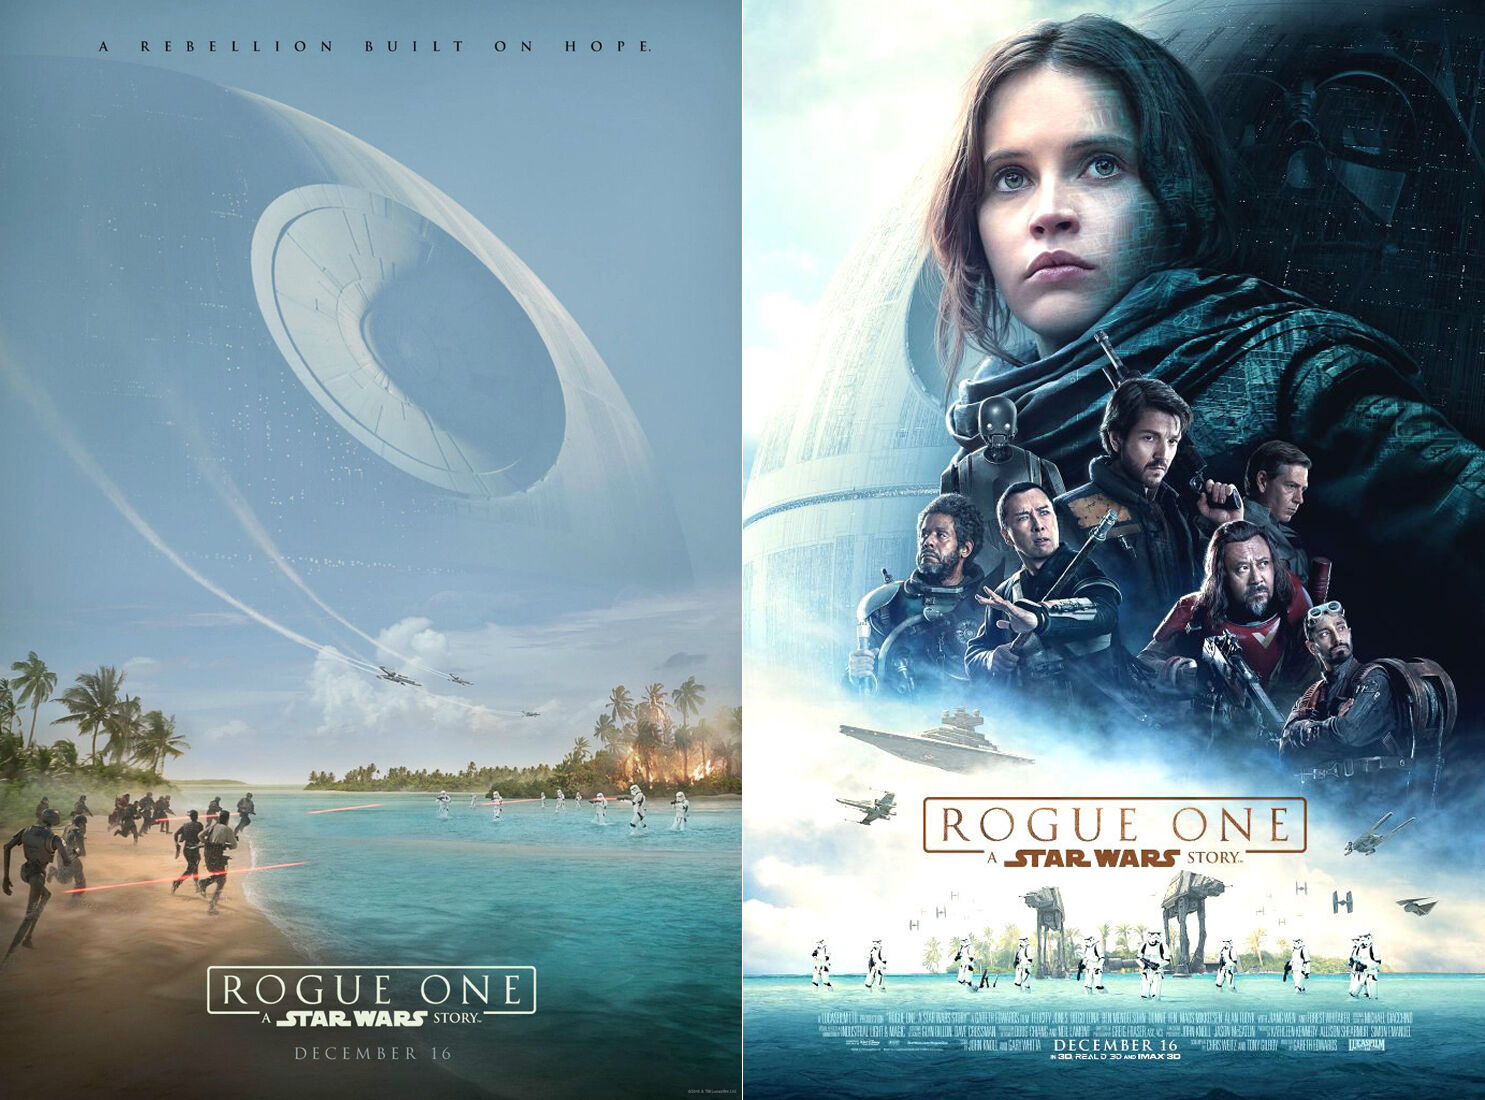 details about set of 2 movie poster original rogue one a star wars story 13x19 ds